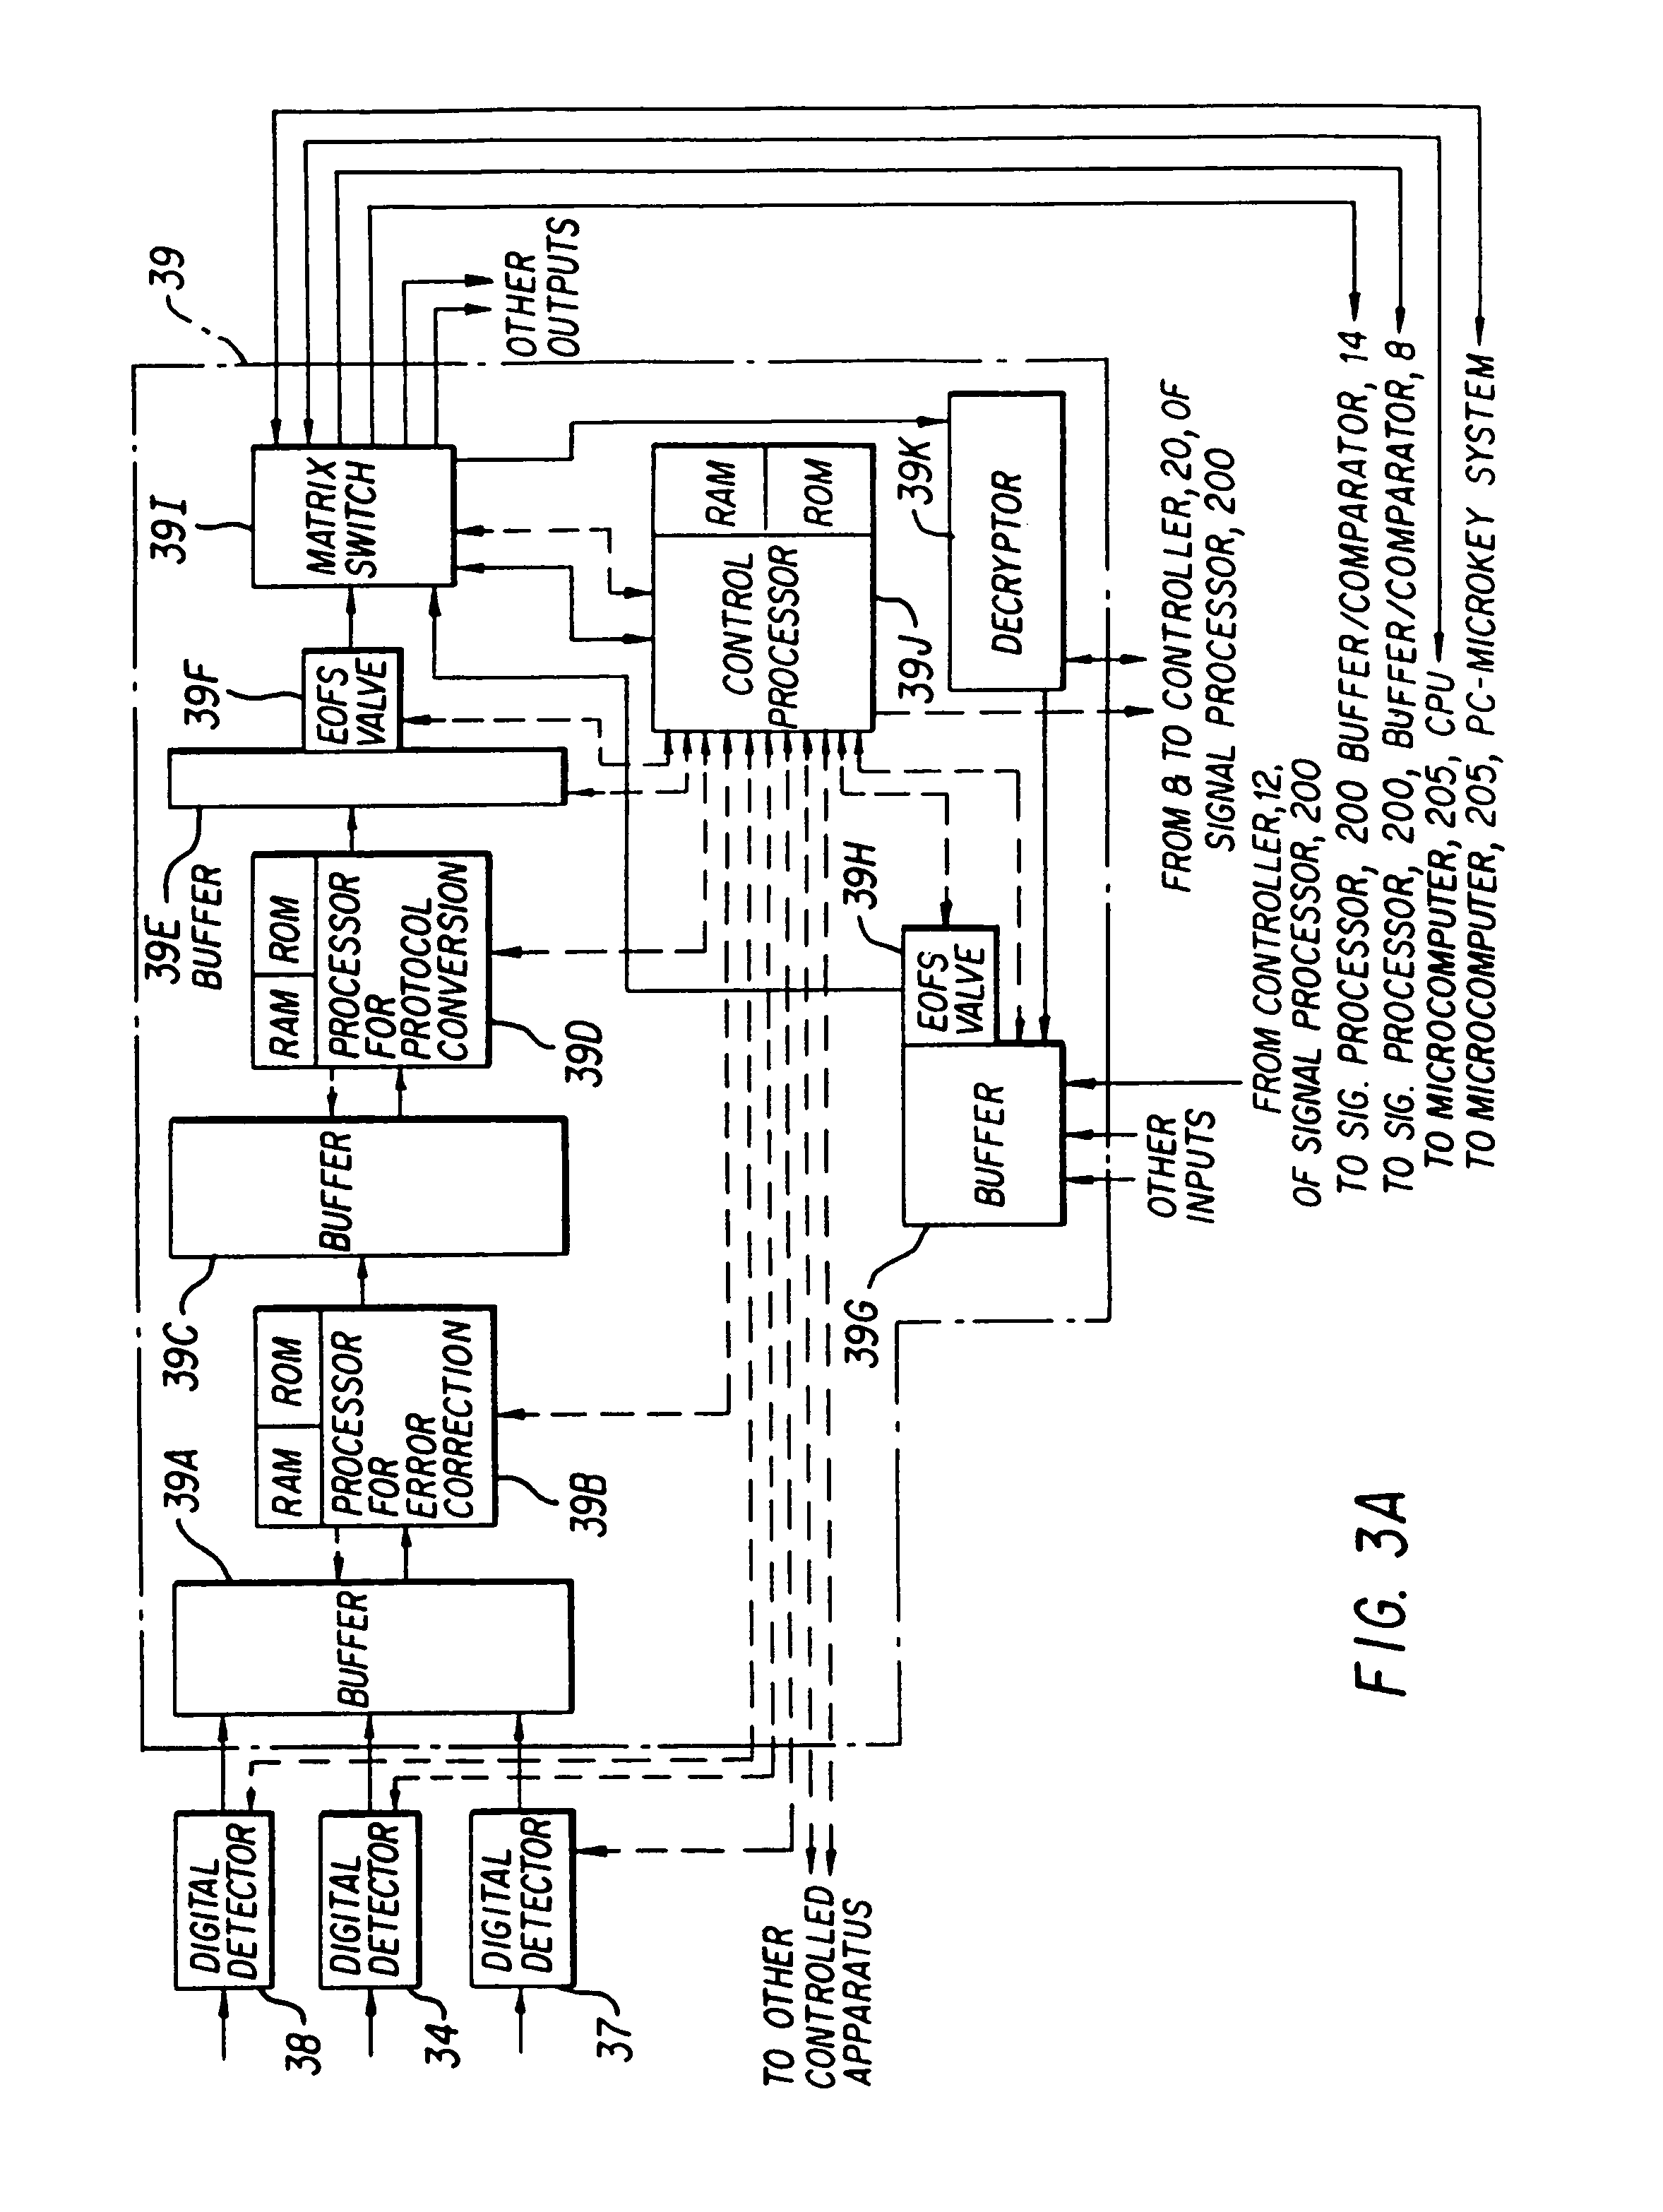 Us7861263b1 Signal Processing Apparatus And Methods Google Patents Lucy 57 Les Paul Wiring Diagram